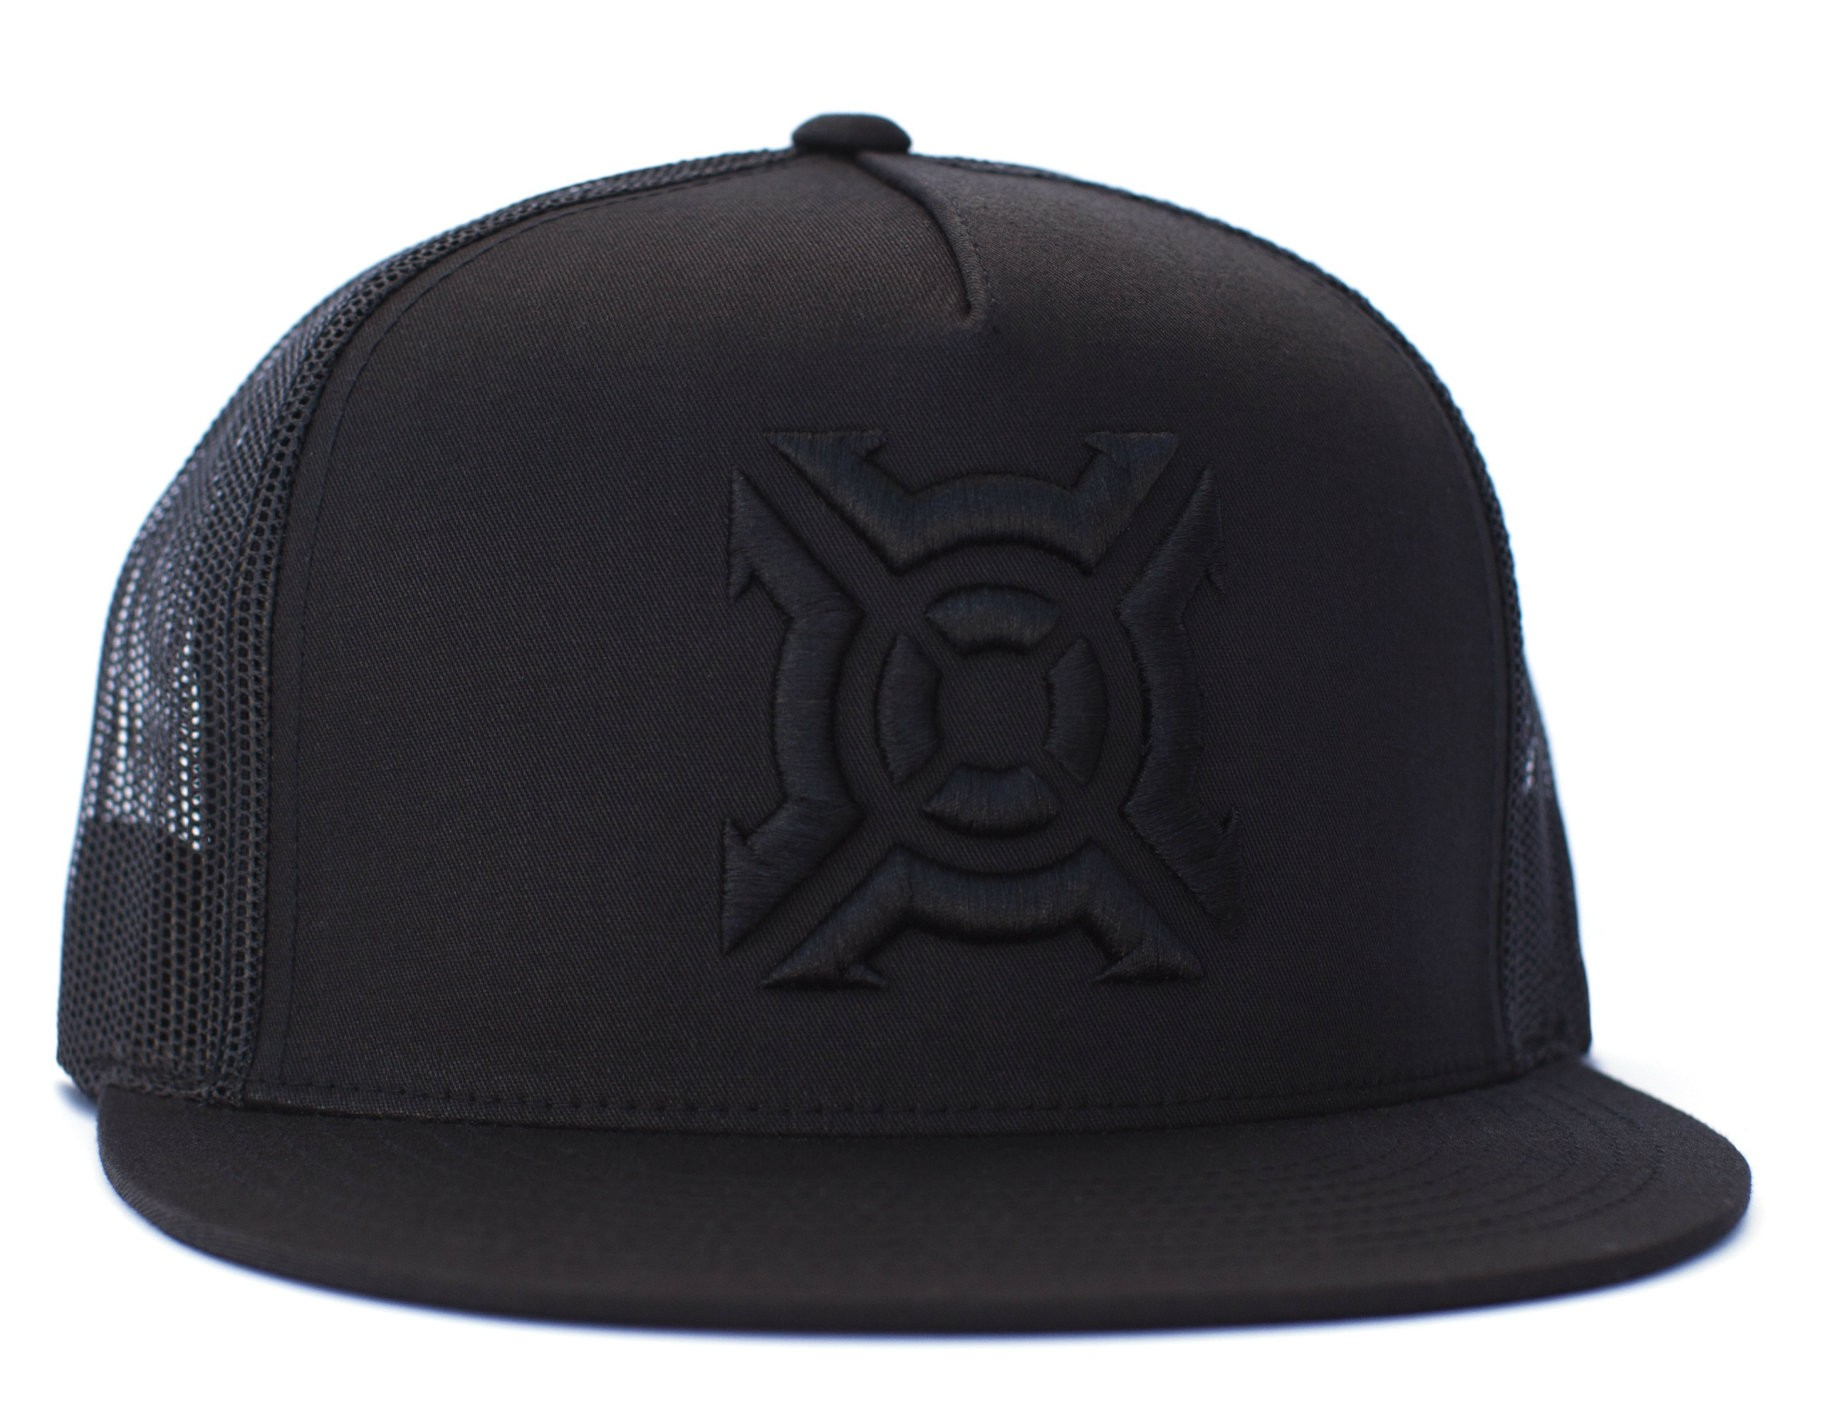 Buy Trucker Black Hat from Progenex | Exclusive online